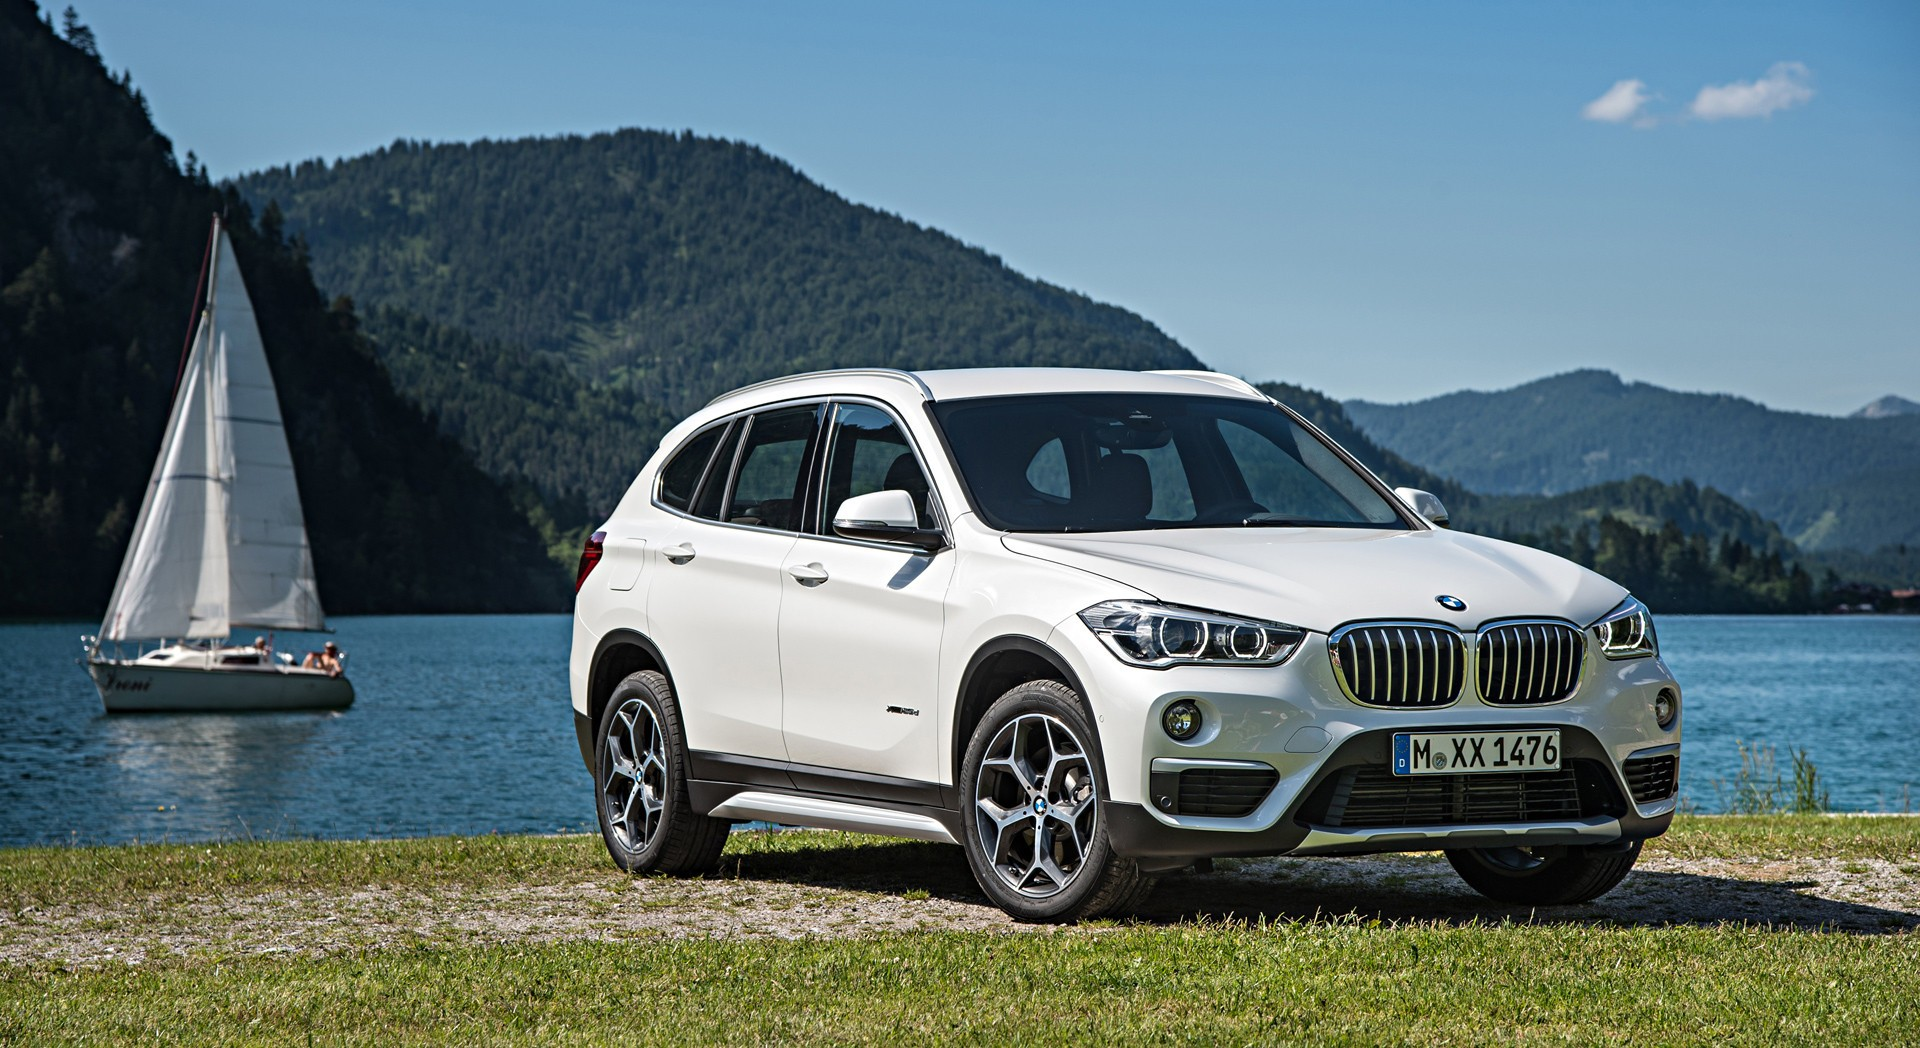 bmw x1 white wheels hd desktop wallpapers 4k hd. Black Bedroom Furniture Sets. Home Design Ideas